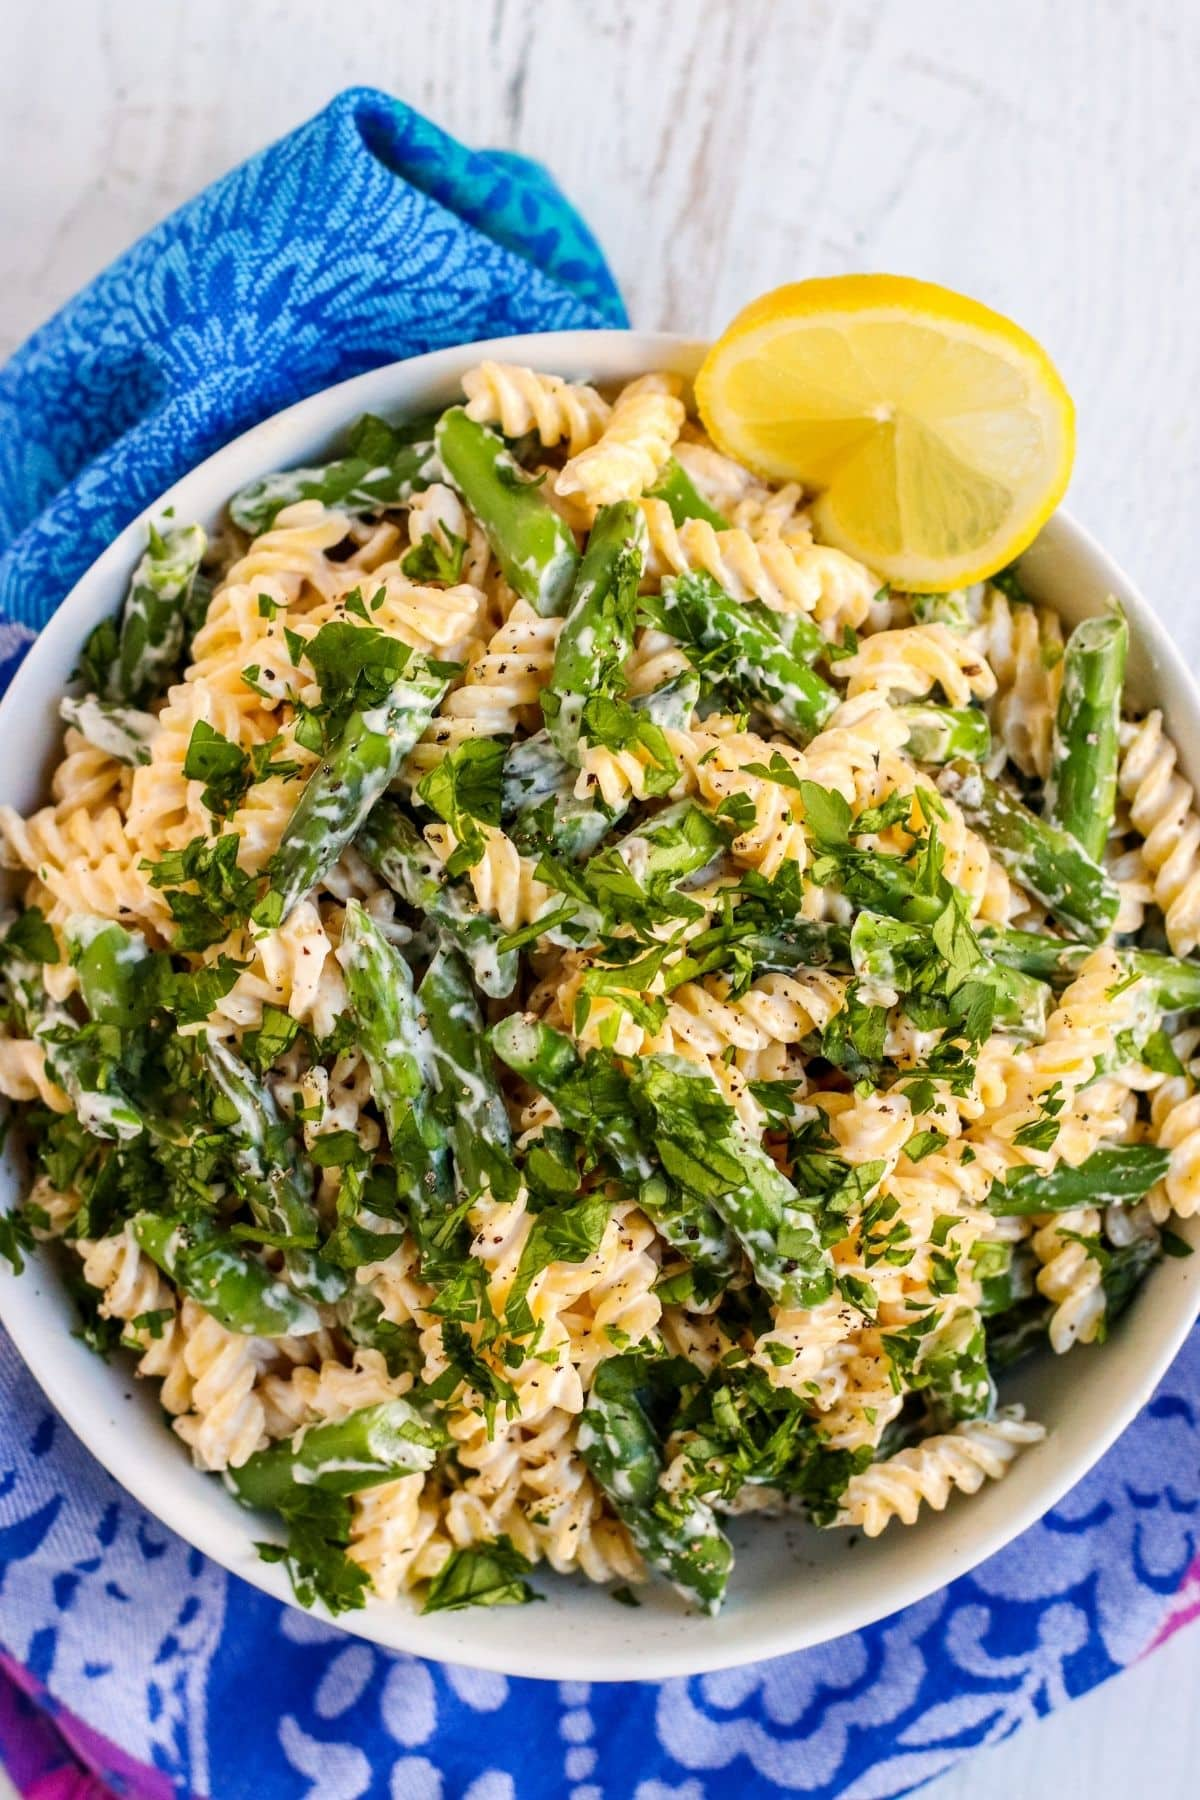 Bowl of asparagus pasta garnished with a lemon wedge